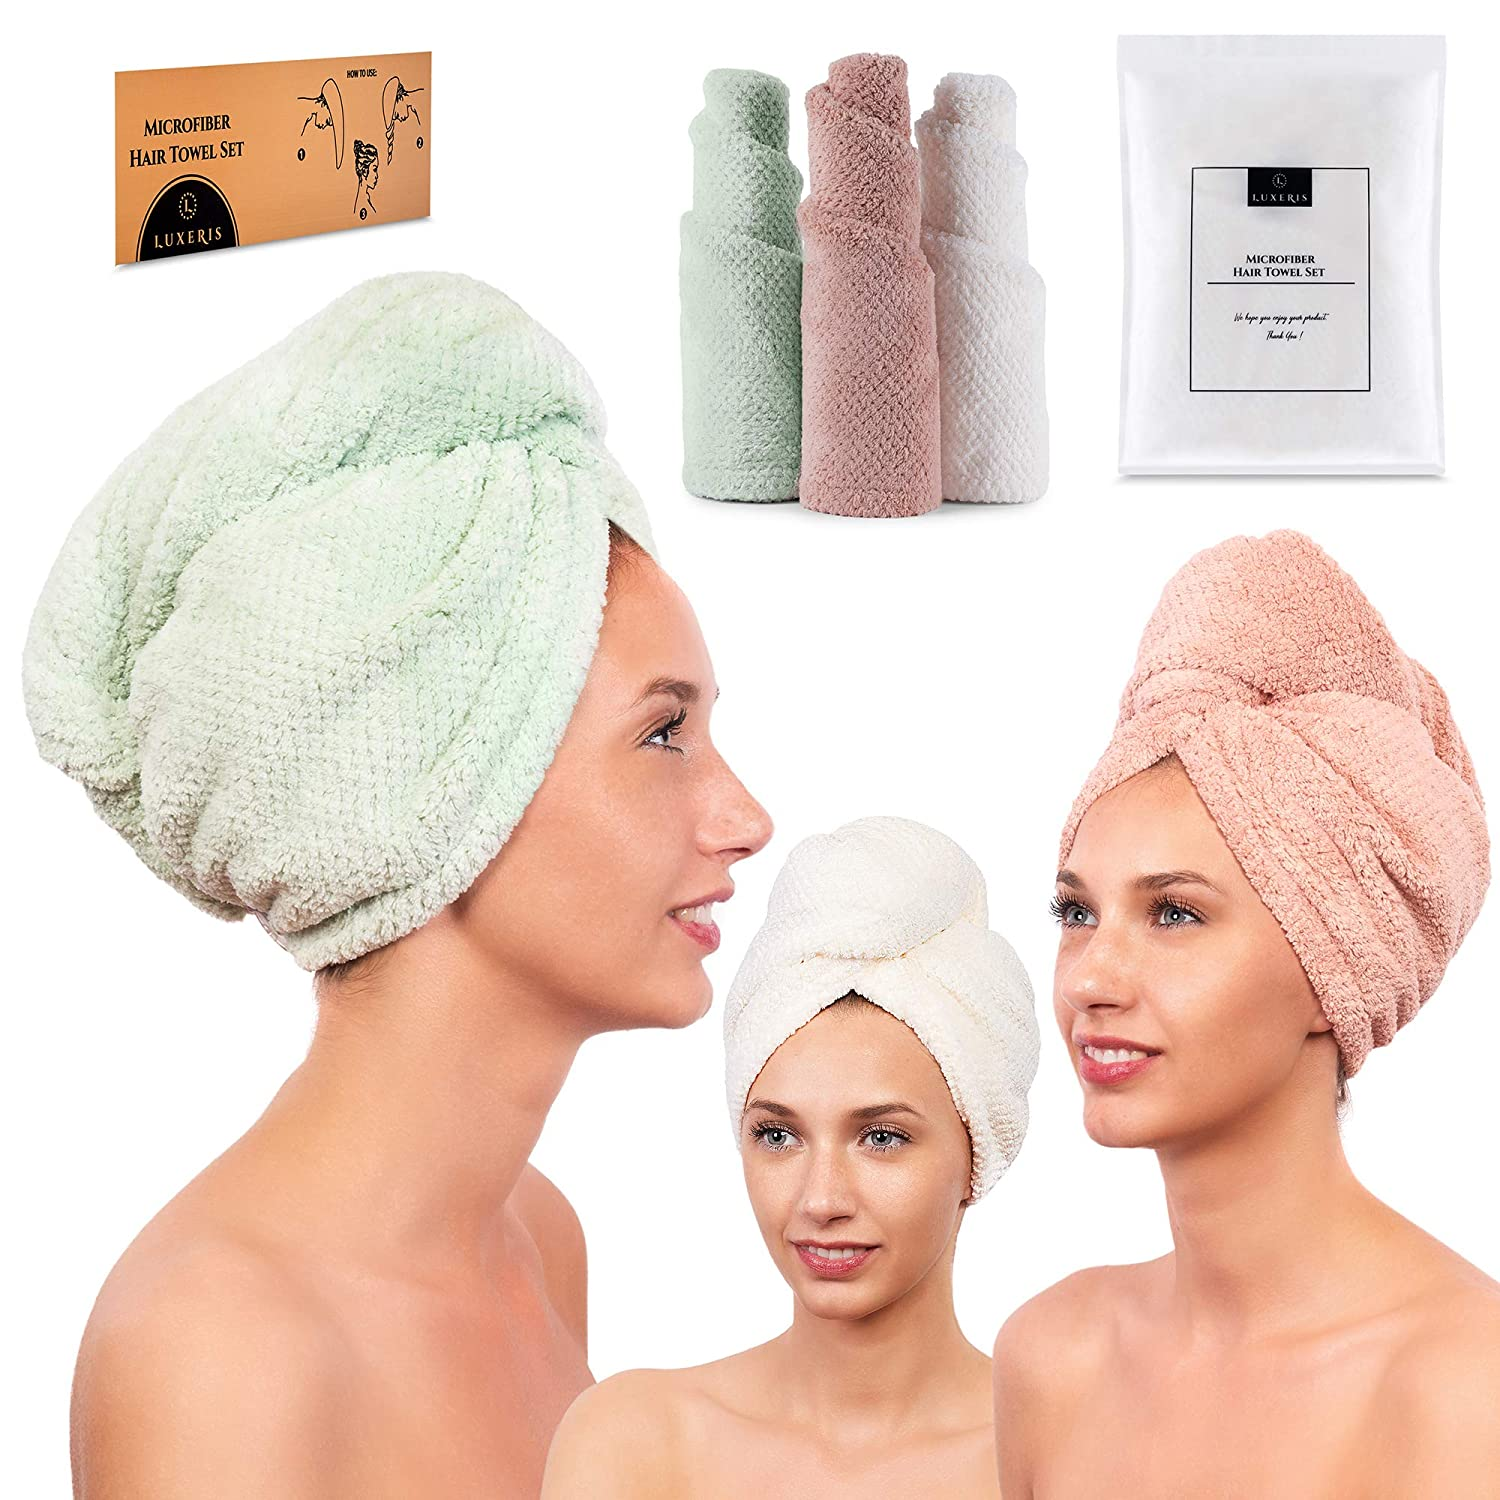 Microfiber Hair Towel for Women - Drying Twist Wrap for Curly, Long, Thin or Short Hair – Ultra Absorbent & Anti Frizz Turban for Sleeping and Showering – 3 Pack (Ivory/Pink/Green) Luxeris